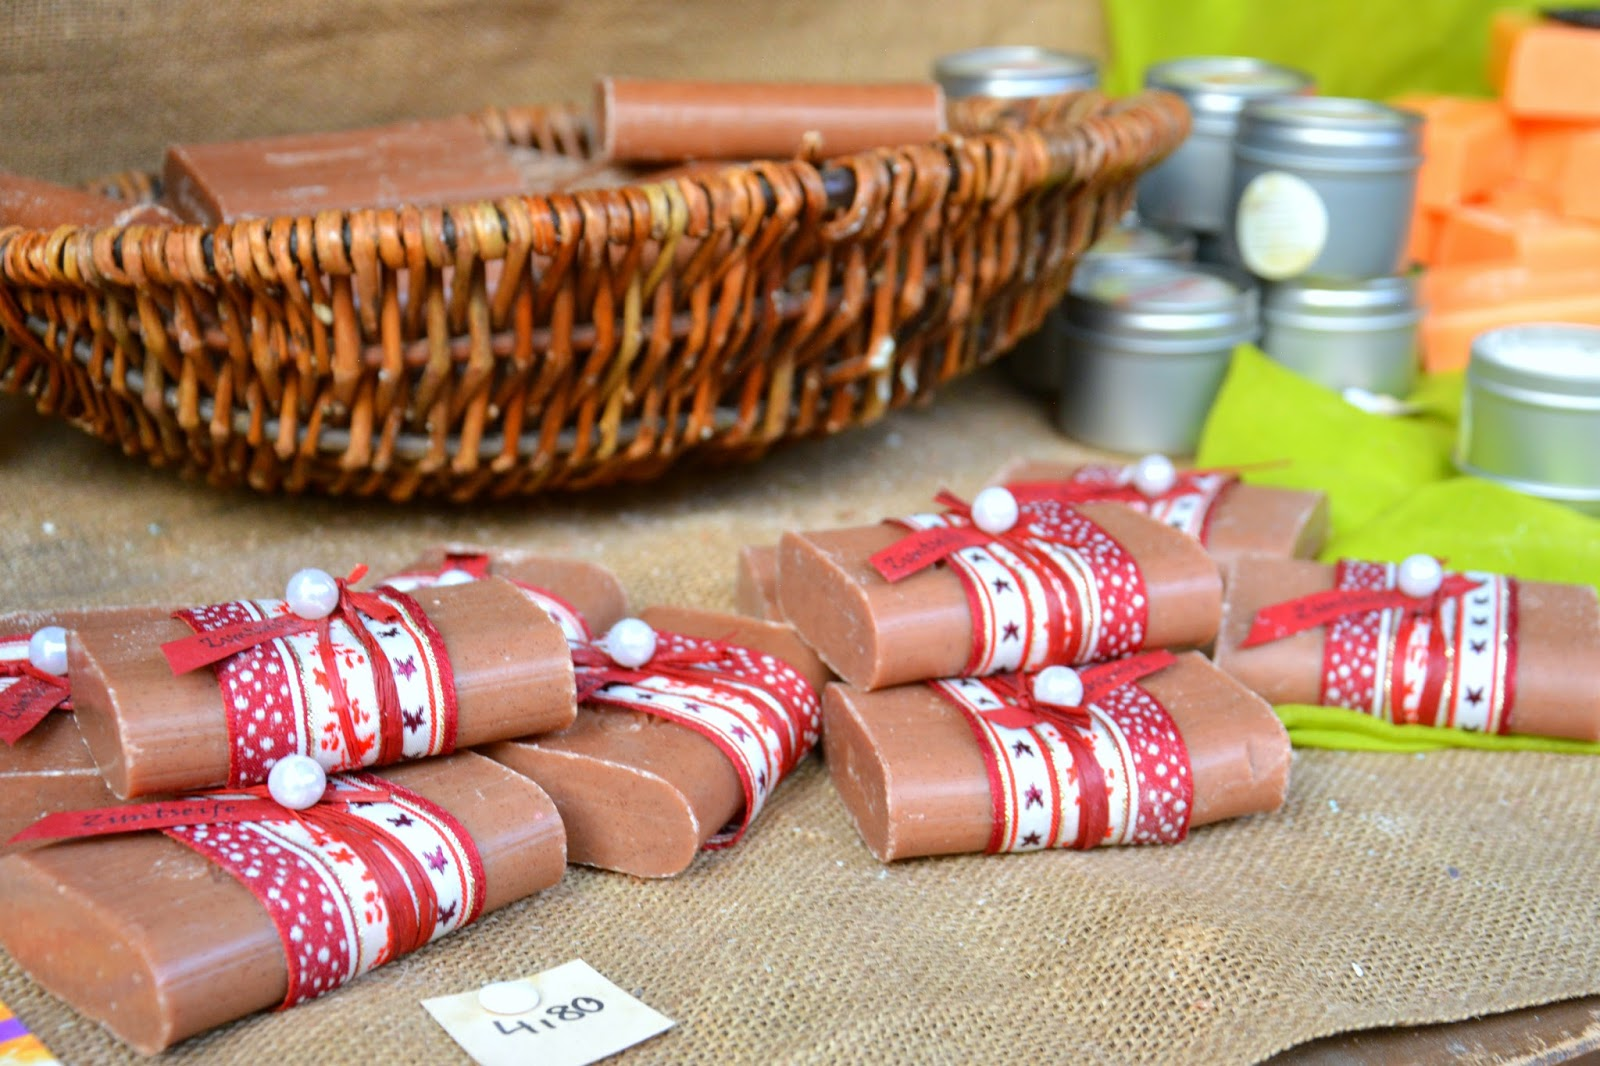 Handmade Cinnamon Soaps wrapped in white-and-red